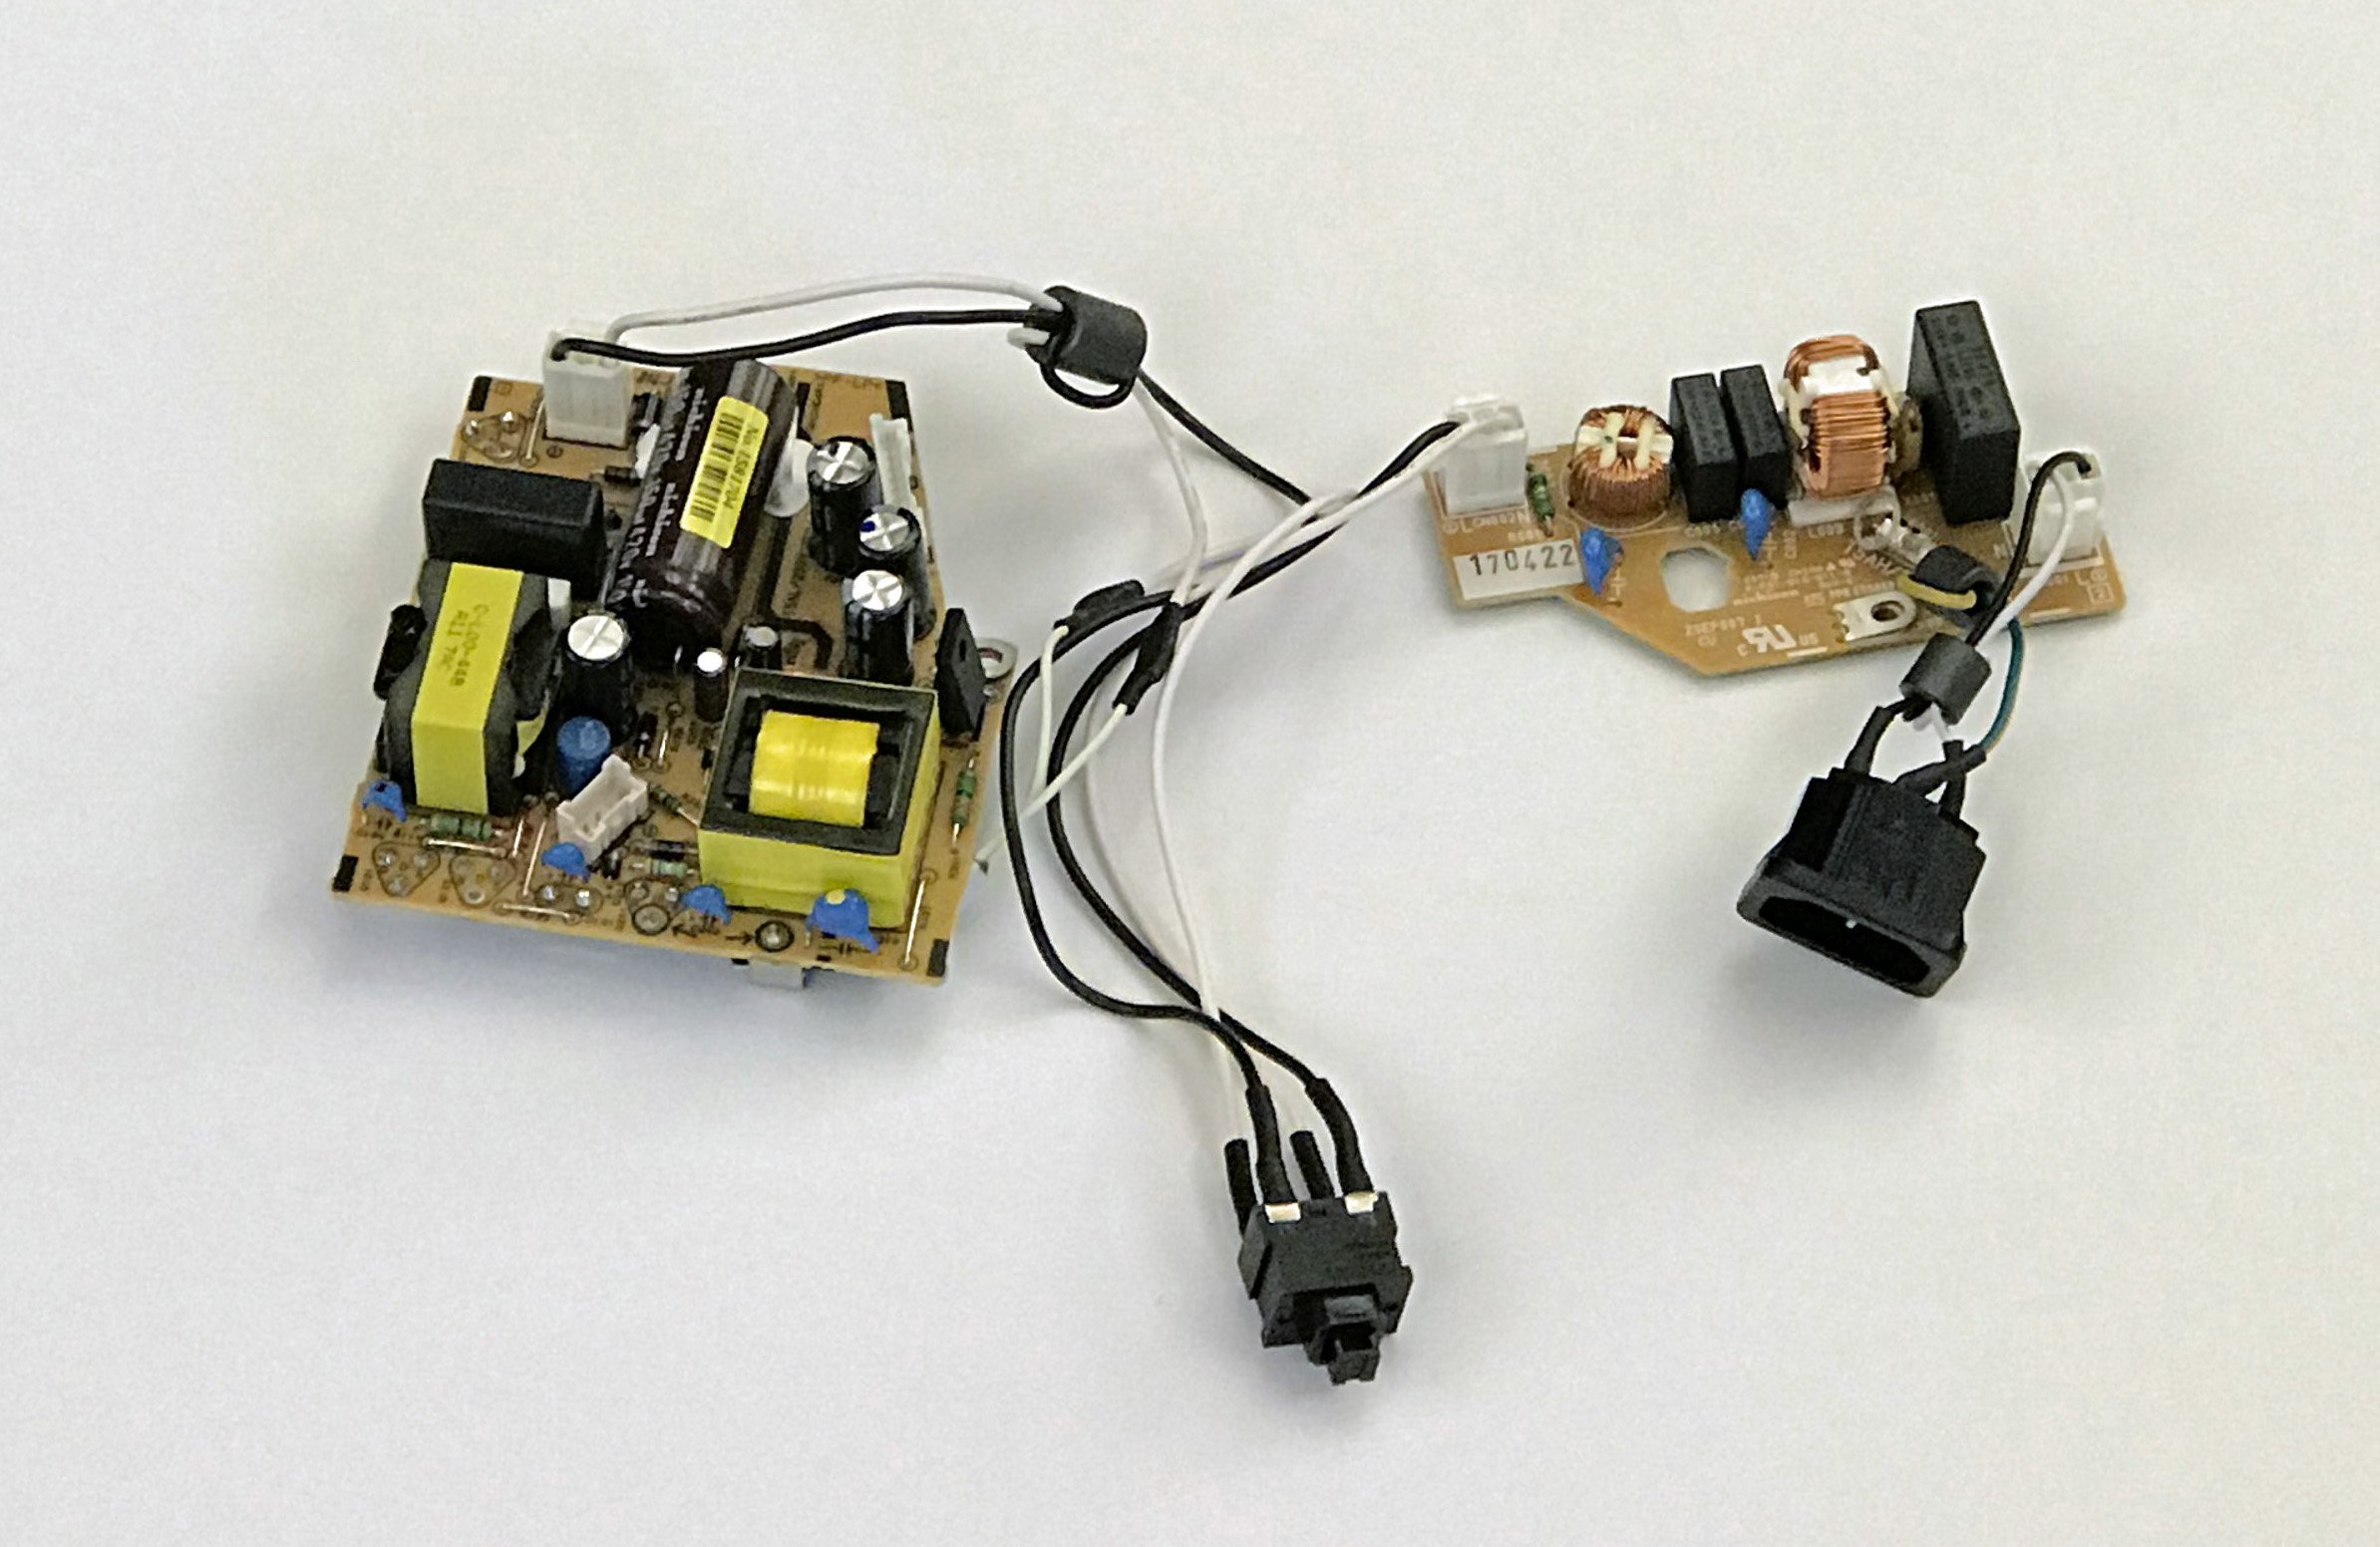 OEM Epson Projector PS Power Supply Filter Assembly For Epson PowerLite Home Cinema 500 & 710HD